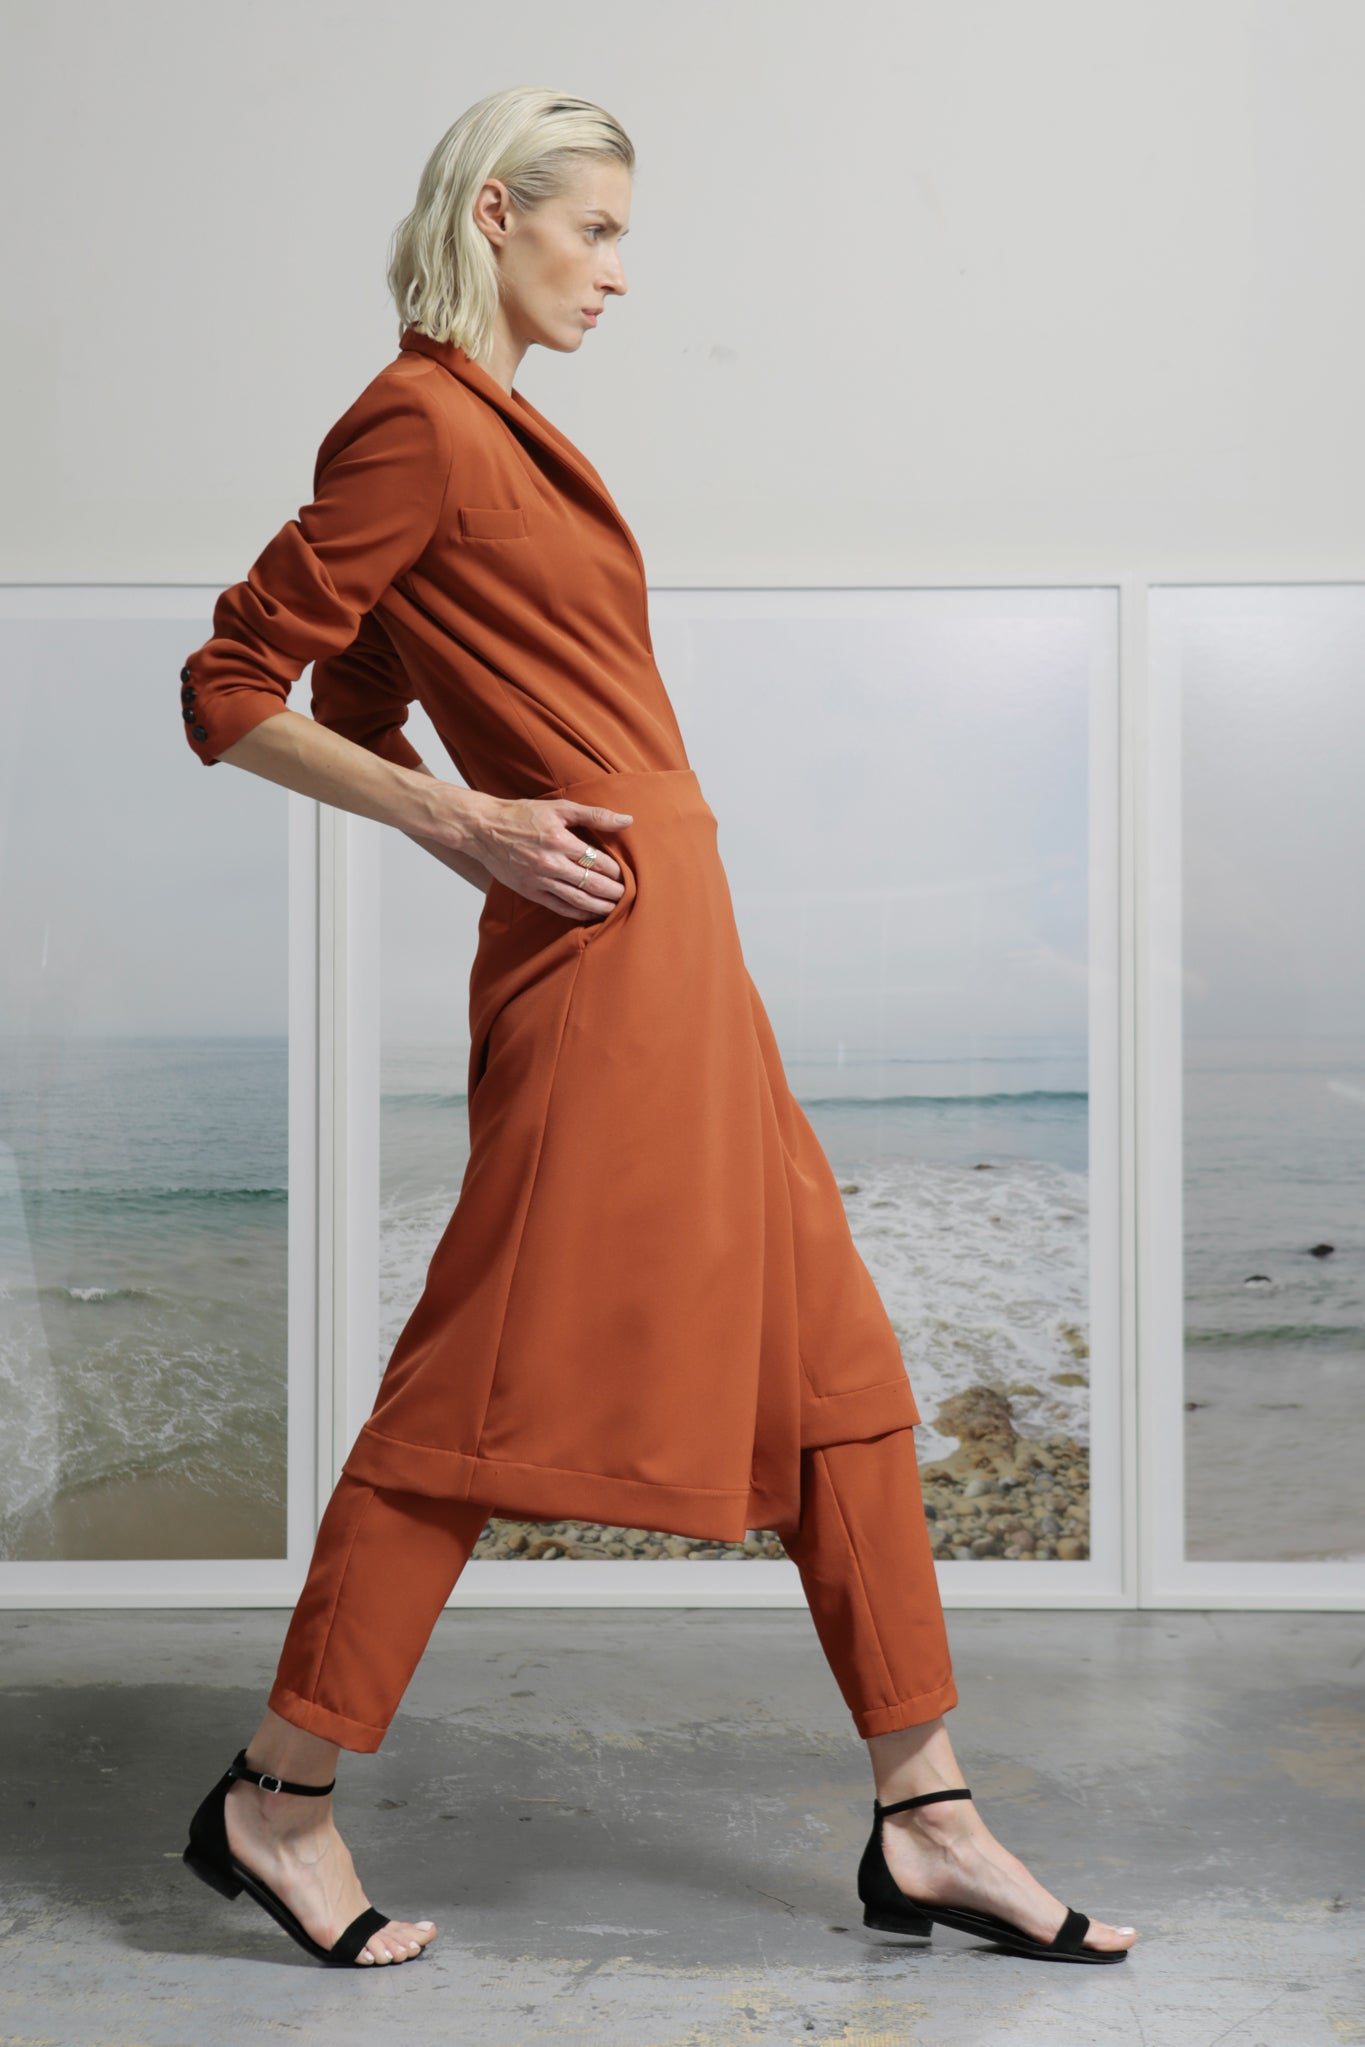 Model wears size Small FRIDA PANT SKIRT - RUST by Heidi Merrick made in Downtown Los Angeles